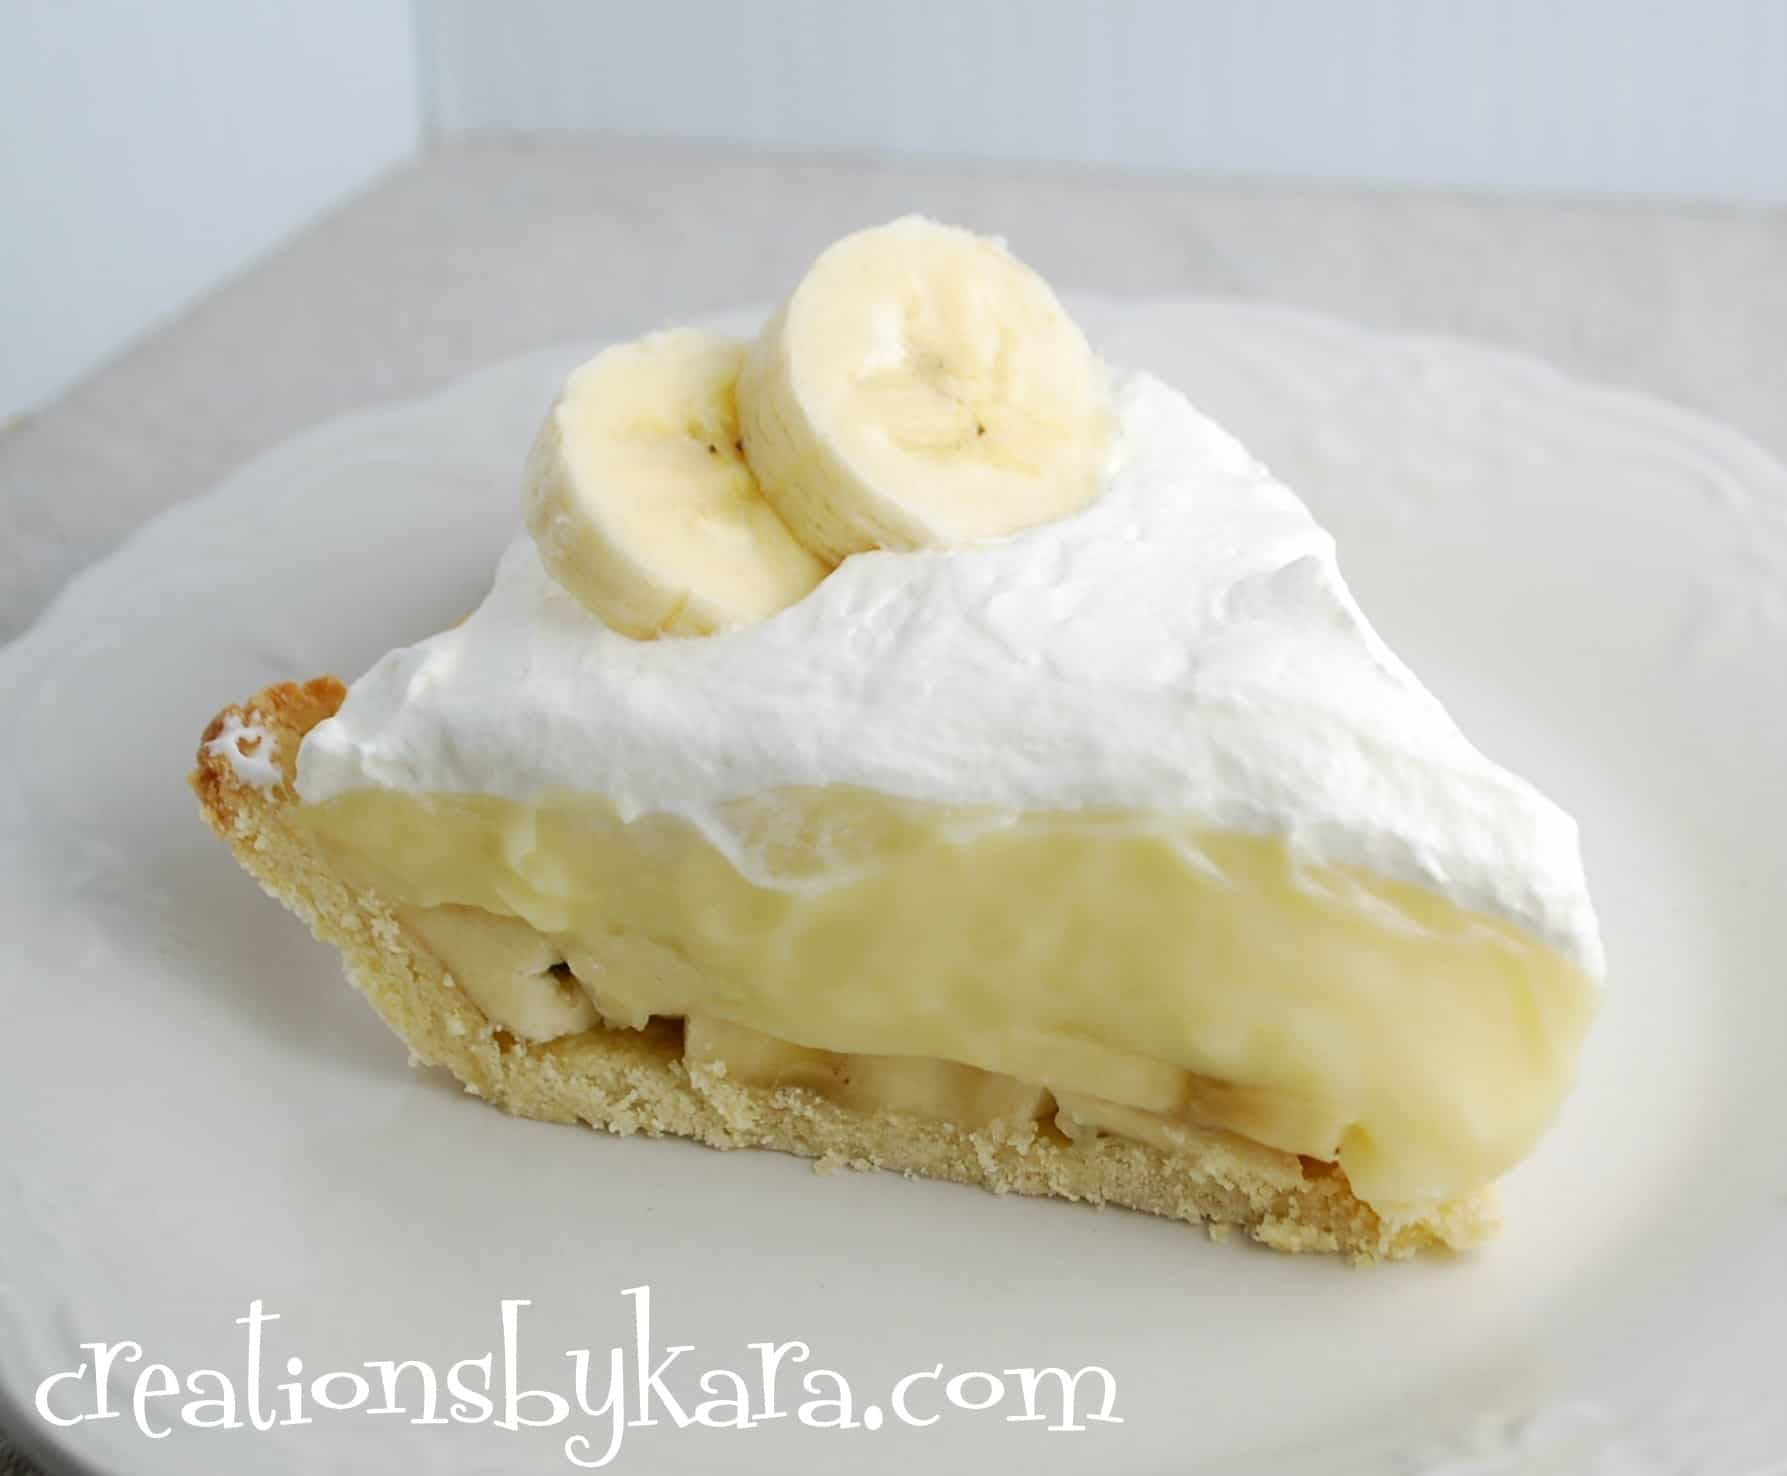 Banana Cream Pie - Creations by Kara